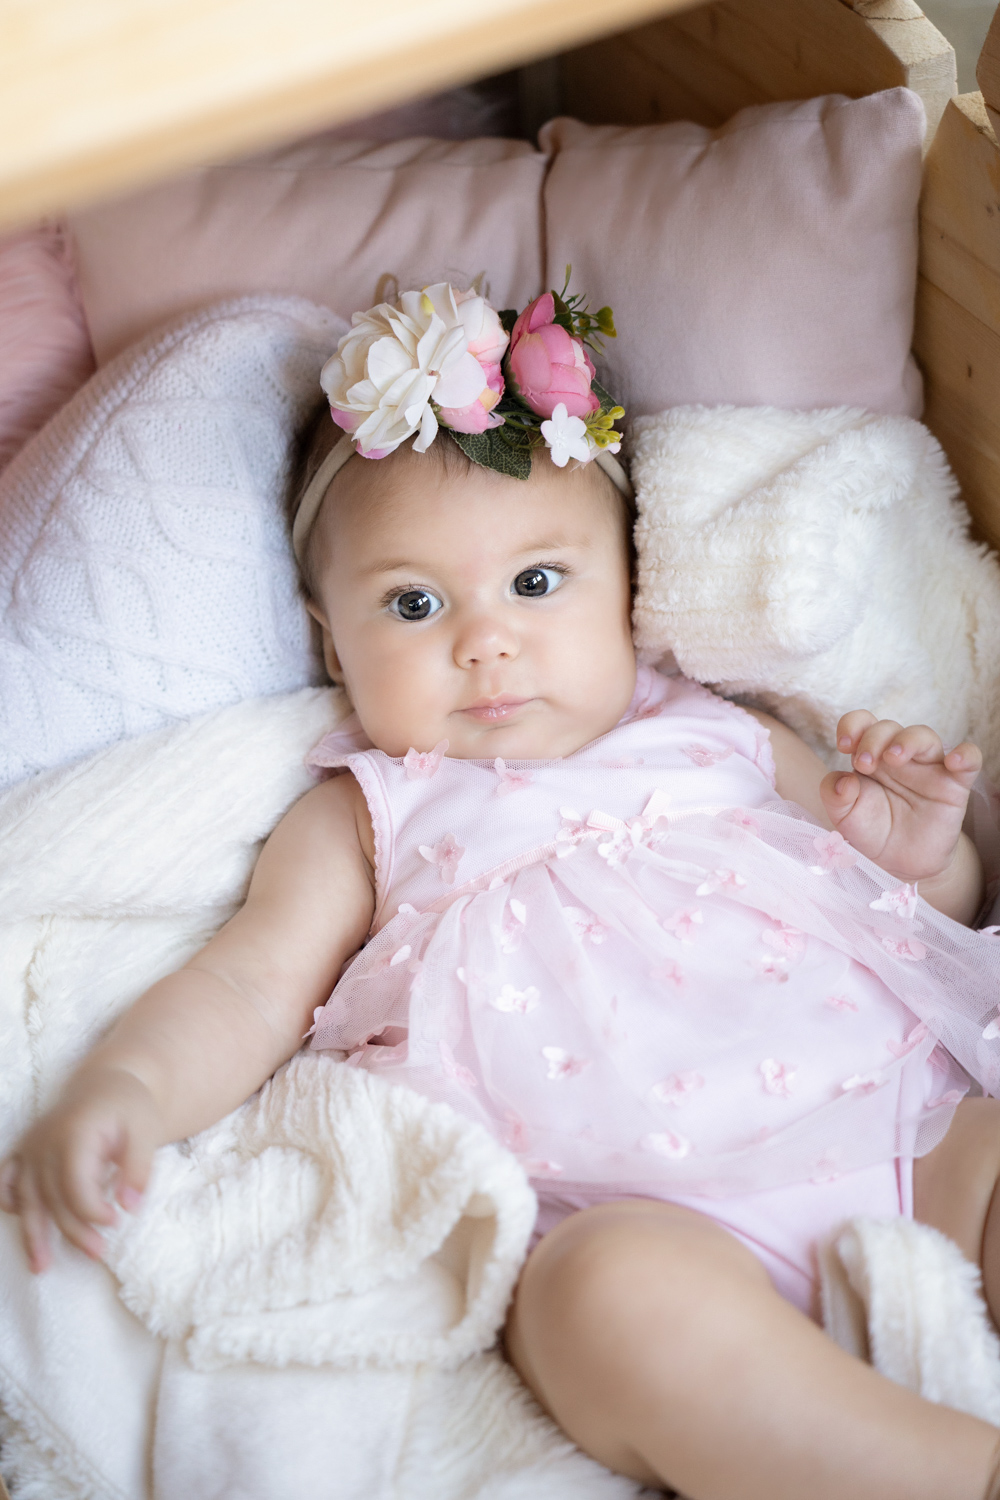 A newborn baby wearing a pink dress lies in a crib with a white blanket.